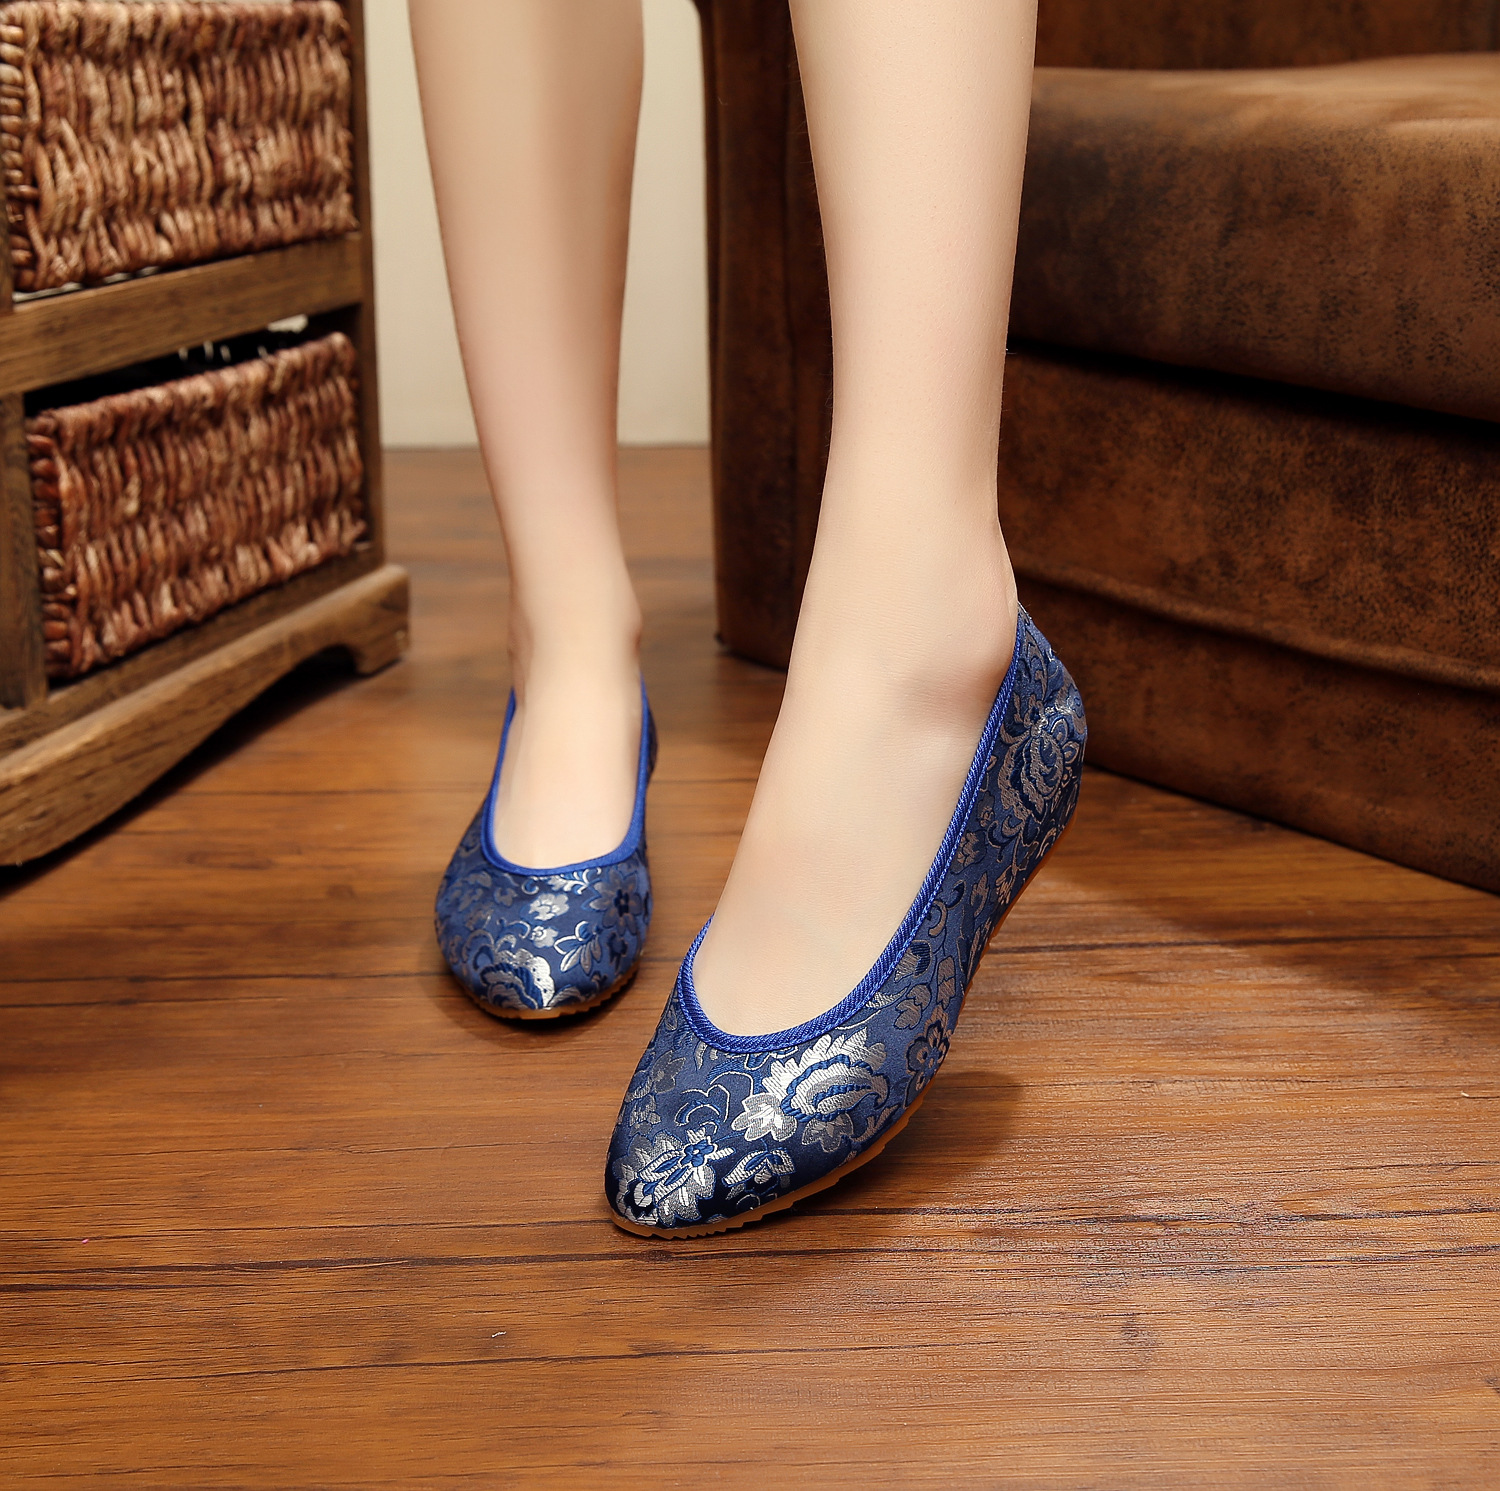 New fashion chinese cheongsam women pumps casual elegant satin embroidered wedge heels ladies Height increasing oxford shoes for<br><br>Aliexpress